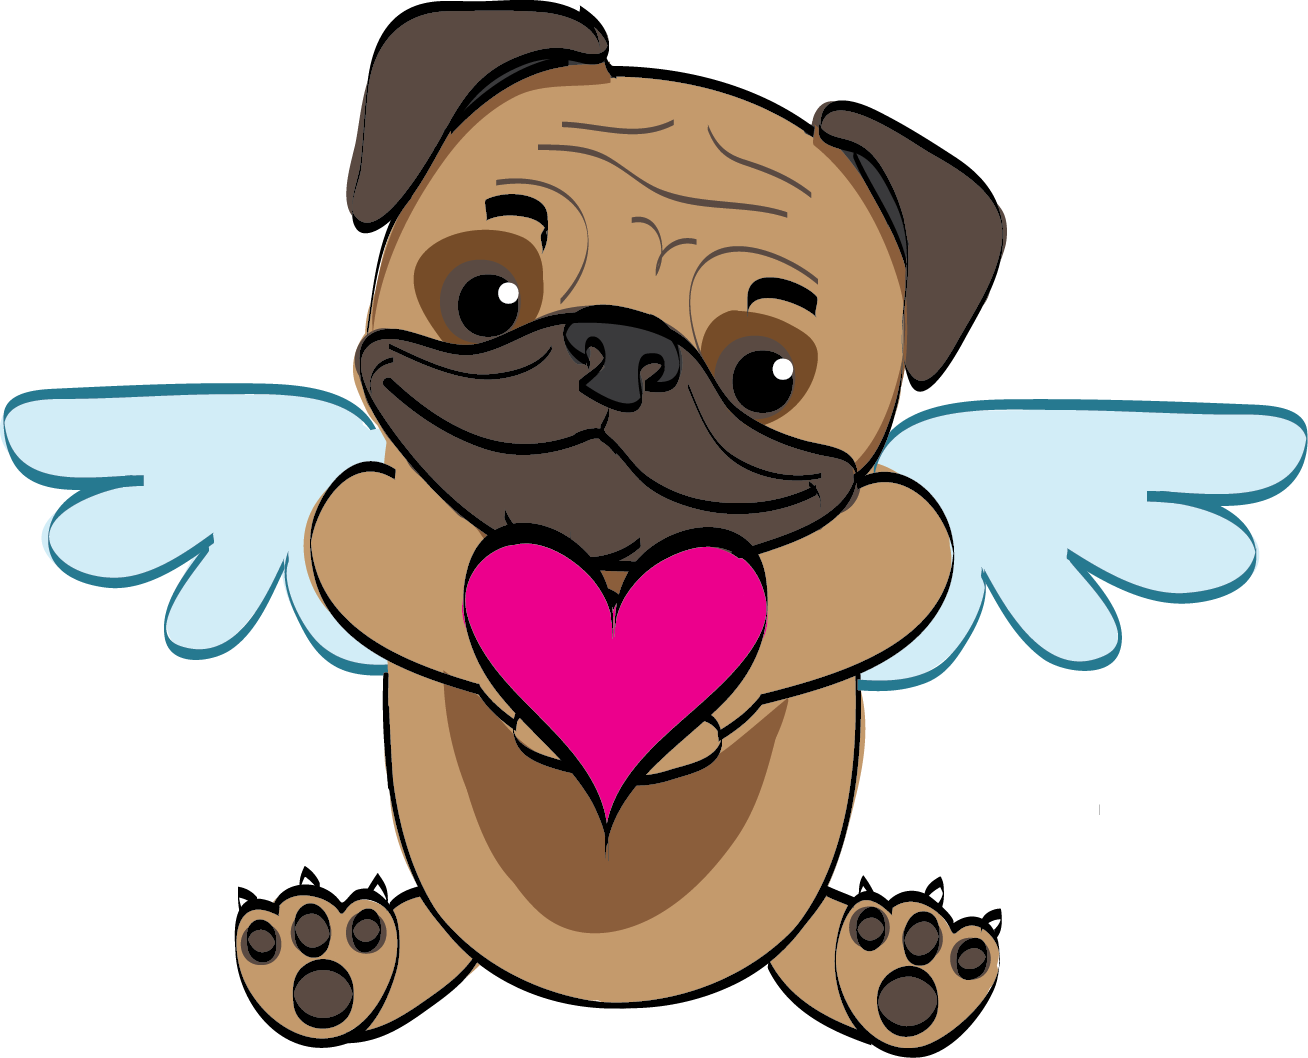 Dog and cat friends clipart jpg library download Weekly Pet Flyer: February 9, 2017 - Humane Society of Broward ... jpg library download